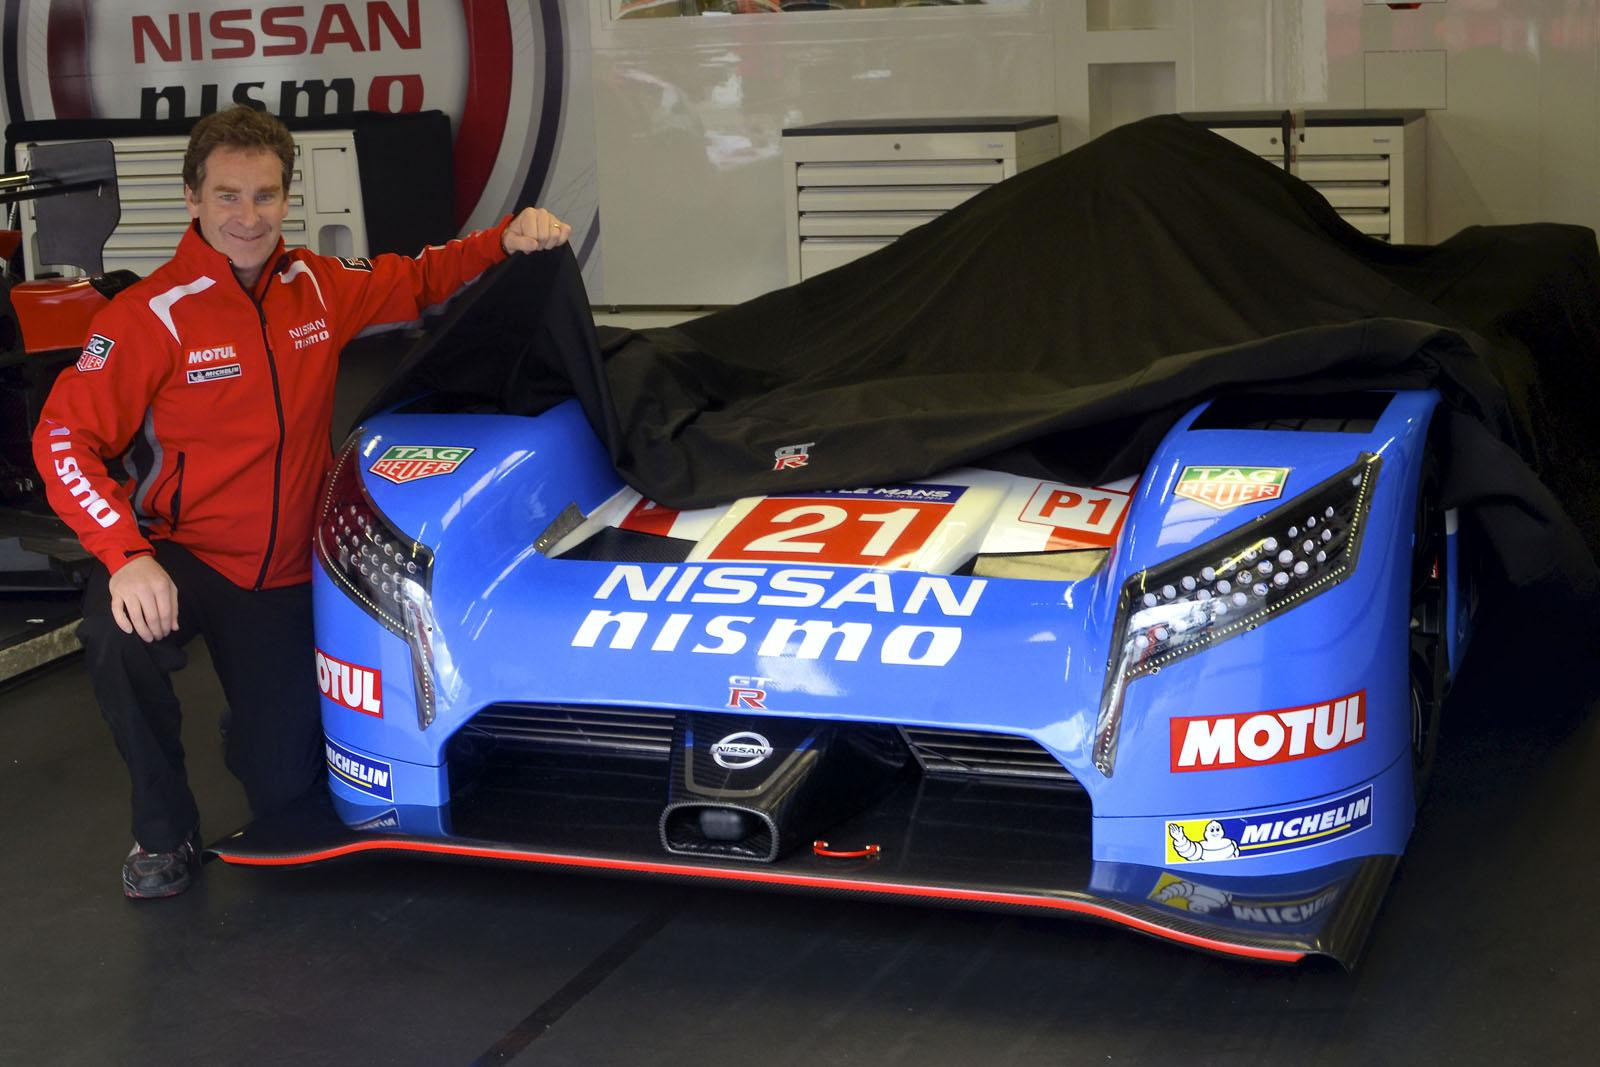 nissan reveals retro livery for gt r lm nismo gtspirit. Black Bedroom Furniture Sets. Home Design Ideas